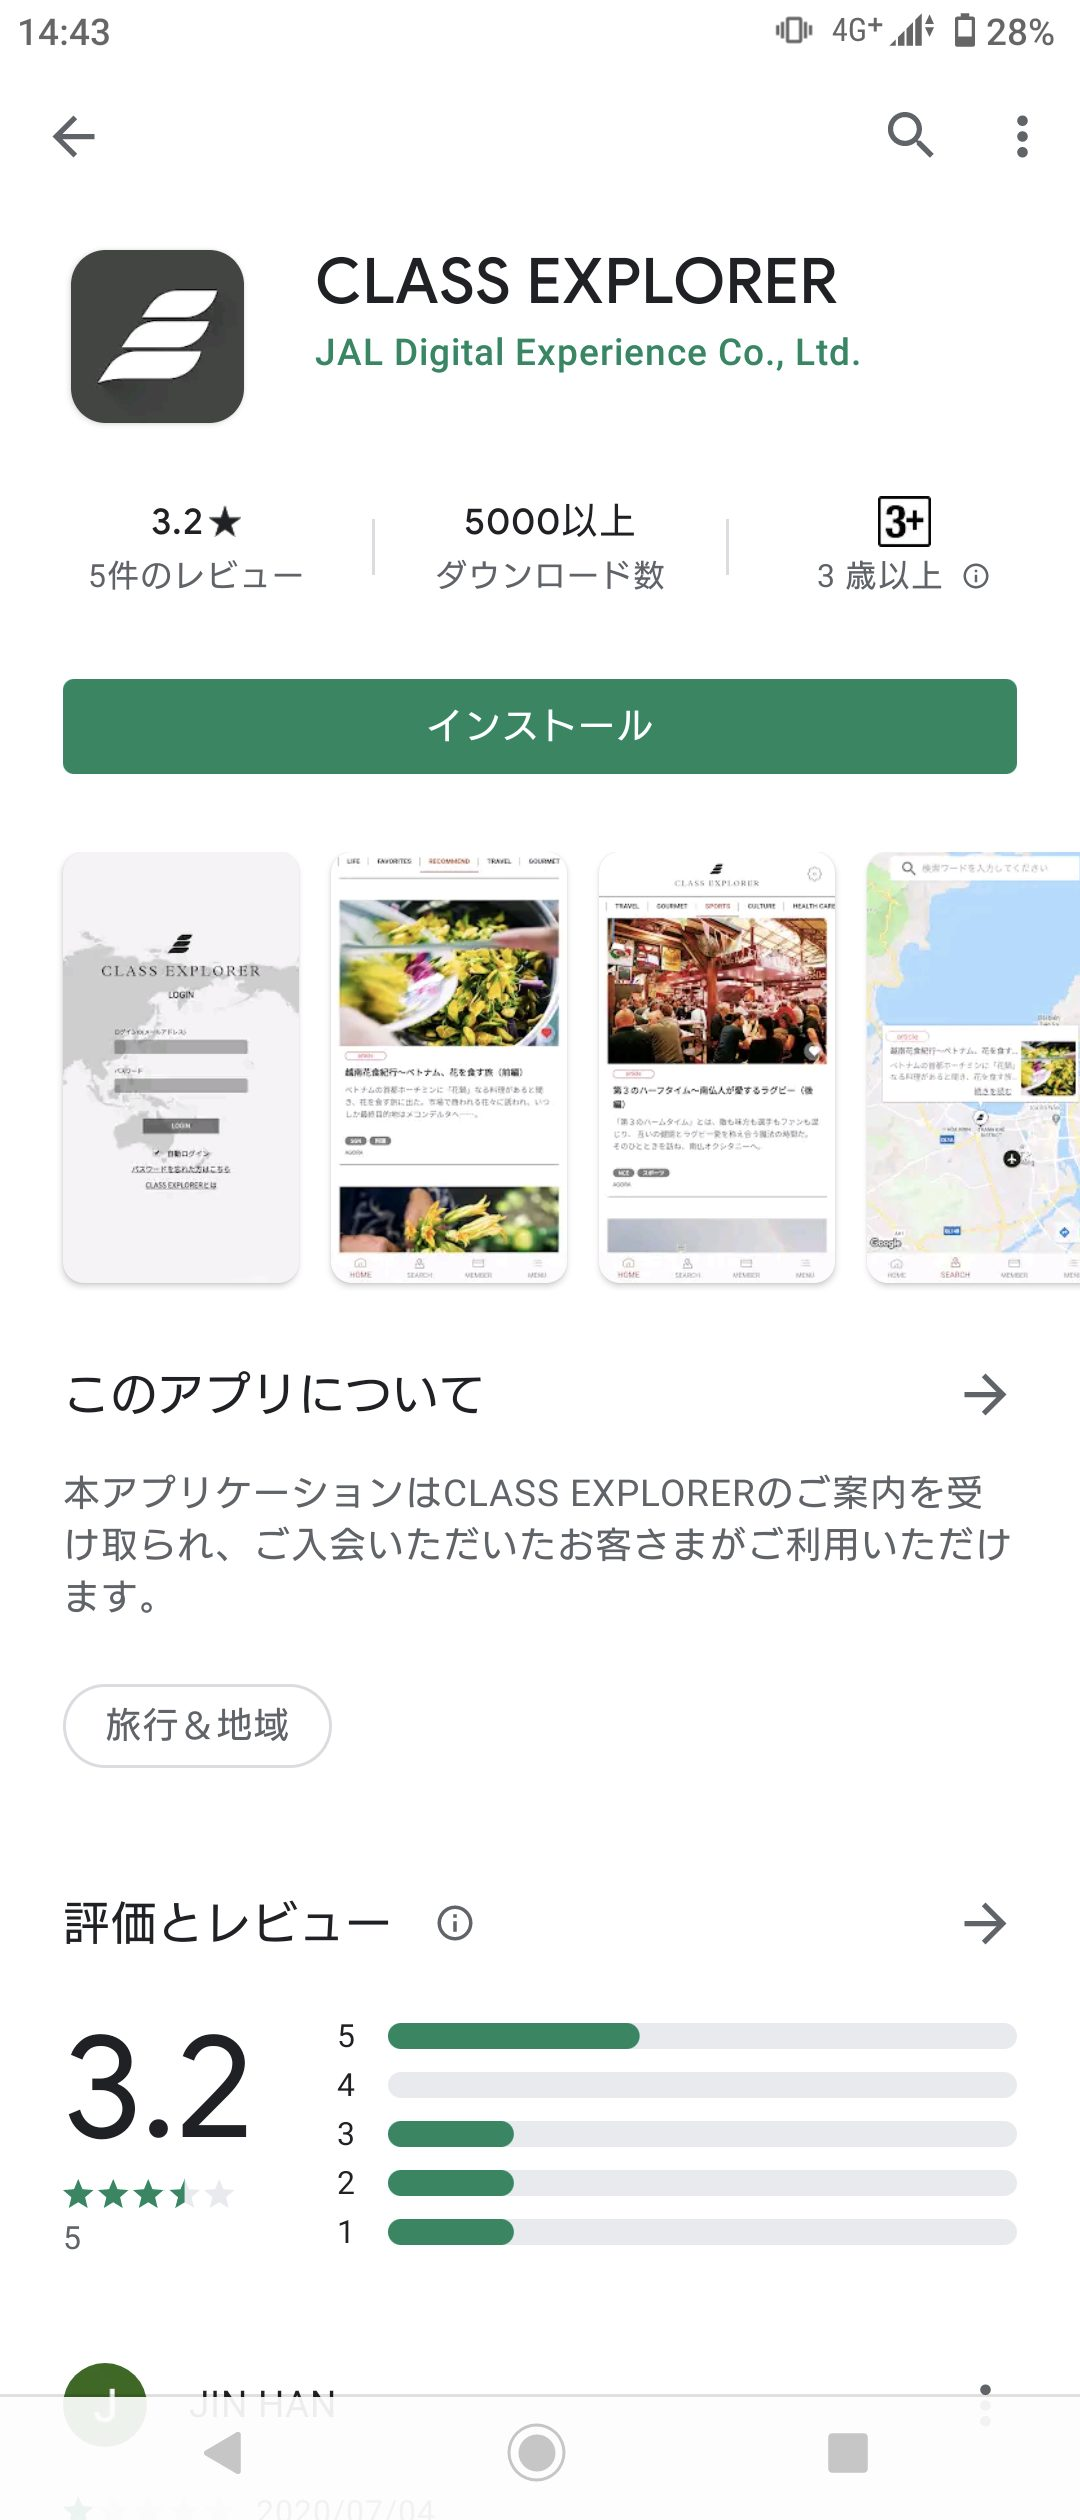 JAL CLASS EXPLORER androidダウンロード数